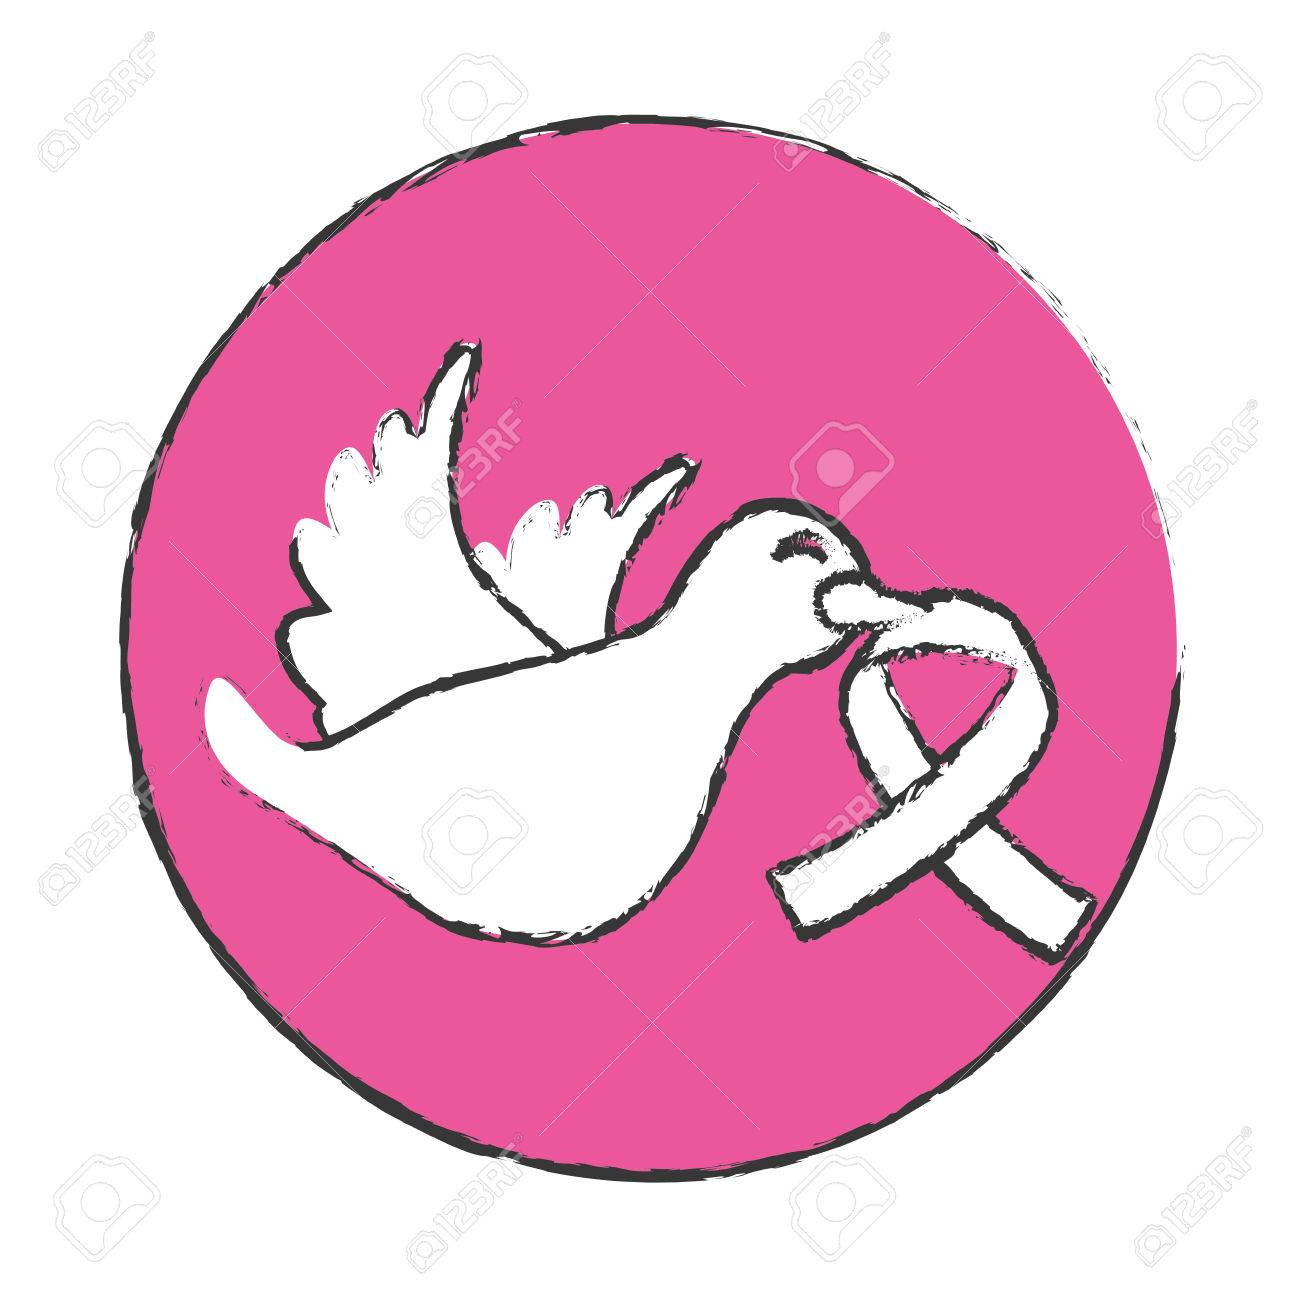 Emblem dove with breast cancer symbol in the beak icon design emblem dove with breast cancer symbol in the beak icon design image stock vector 70387998 biocorpaavc Gallery